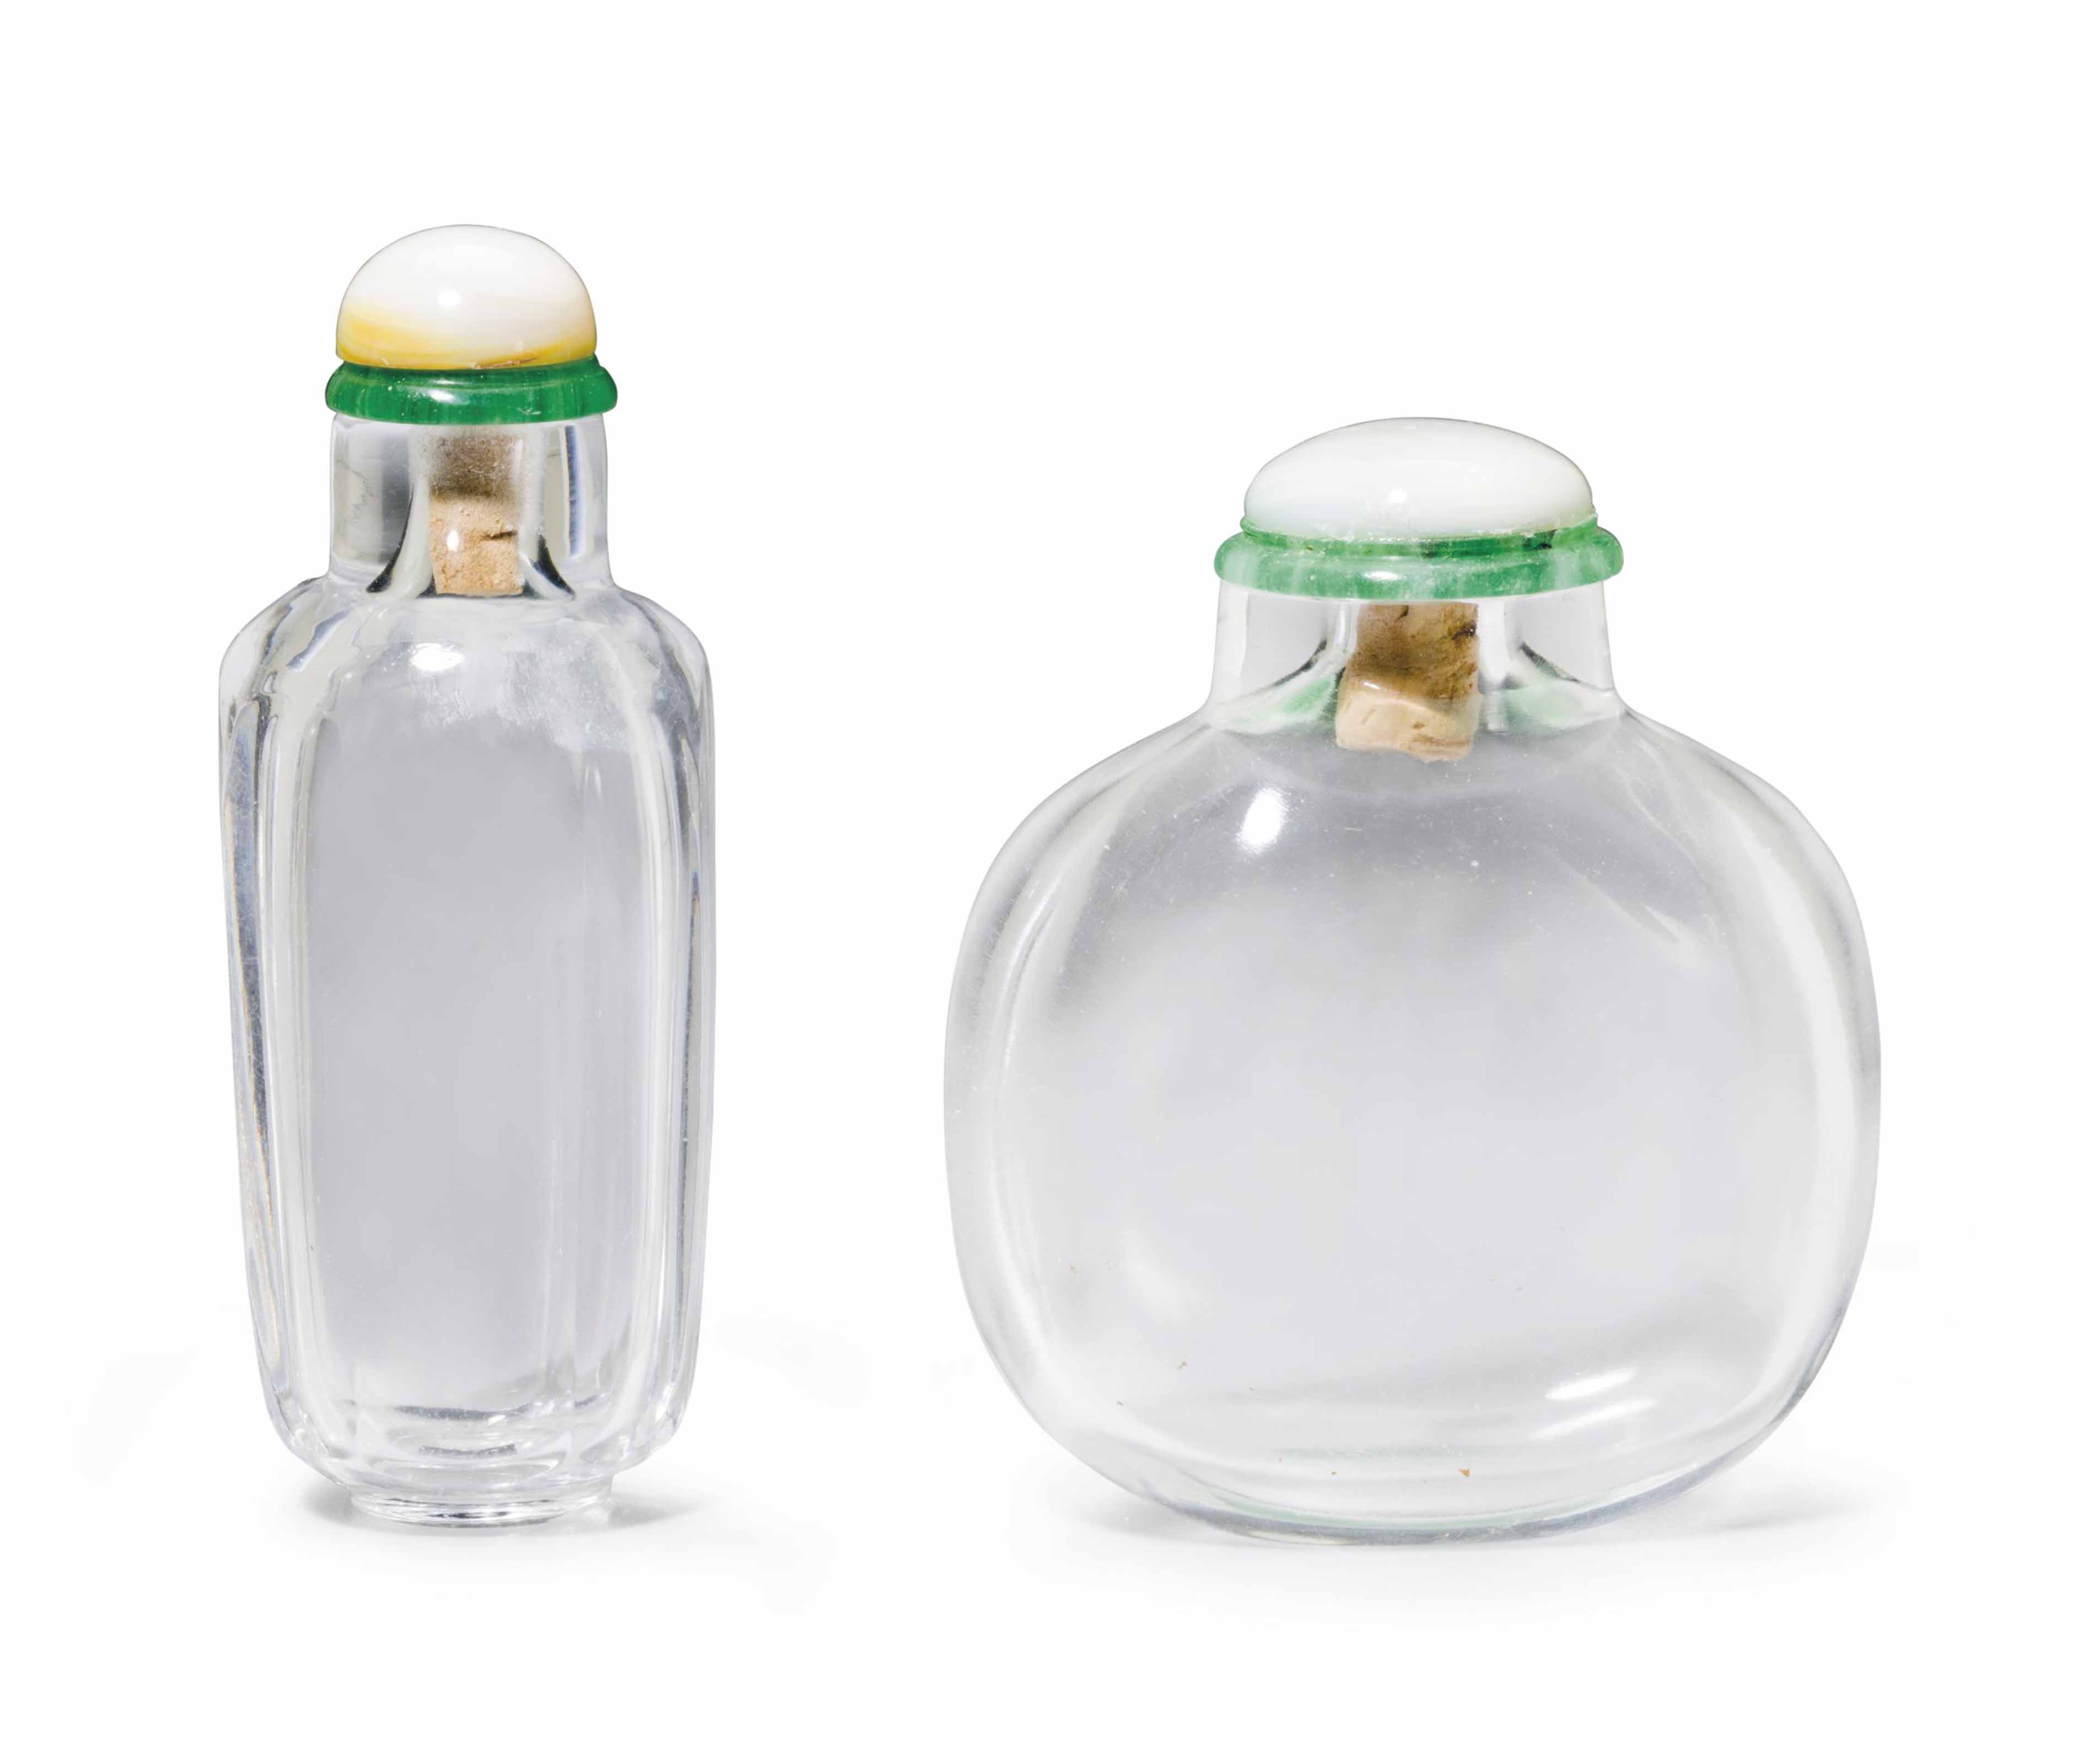 TWO ROCK CRYSTAL SNUFF BOTTLES